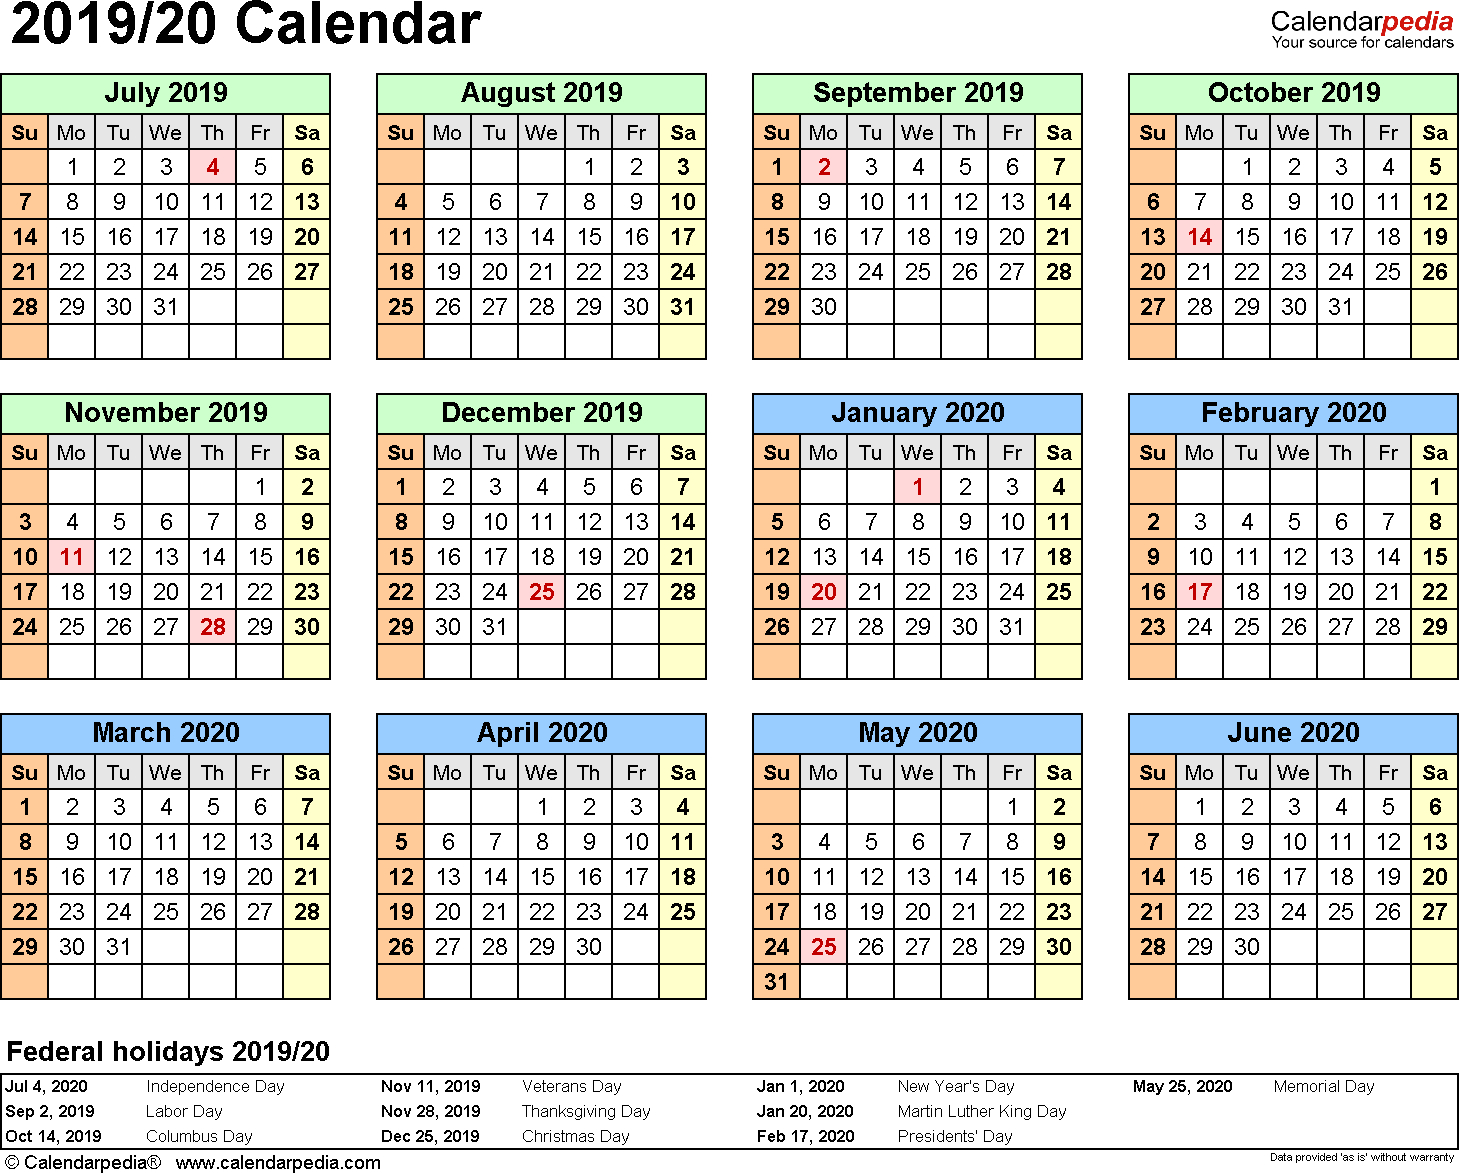 Split Year Calendar 2019/20 (July To June) - Word Templates within Free At A Glance Editable Calendar July 2019-June 2020